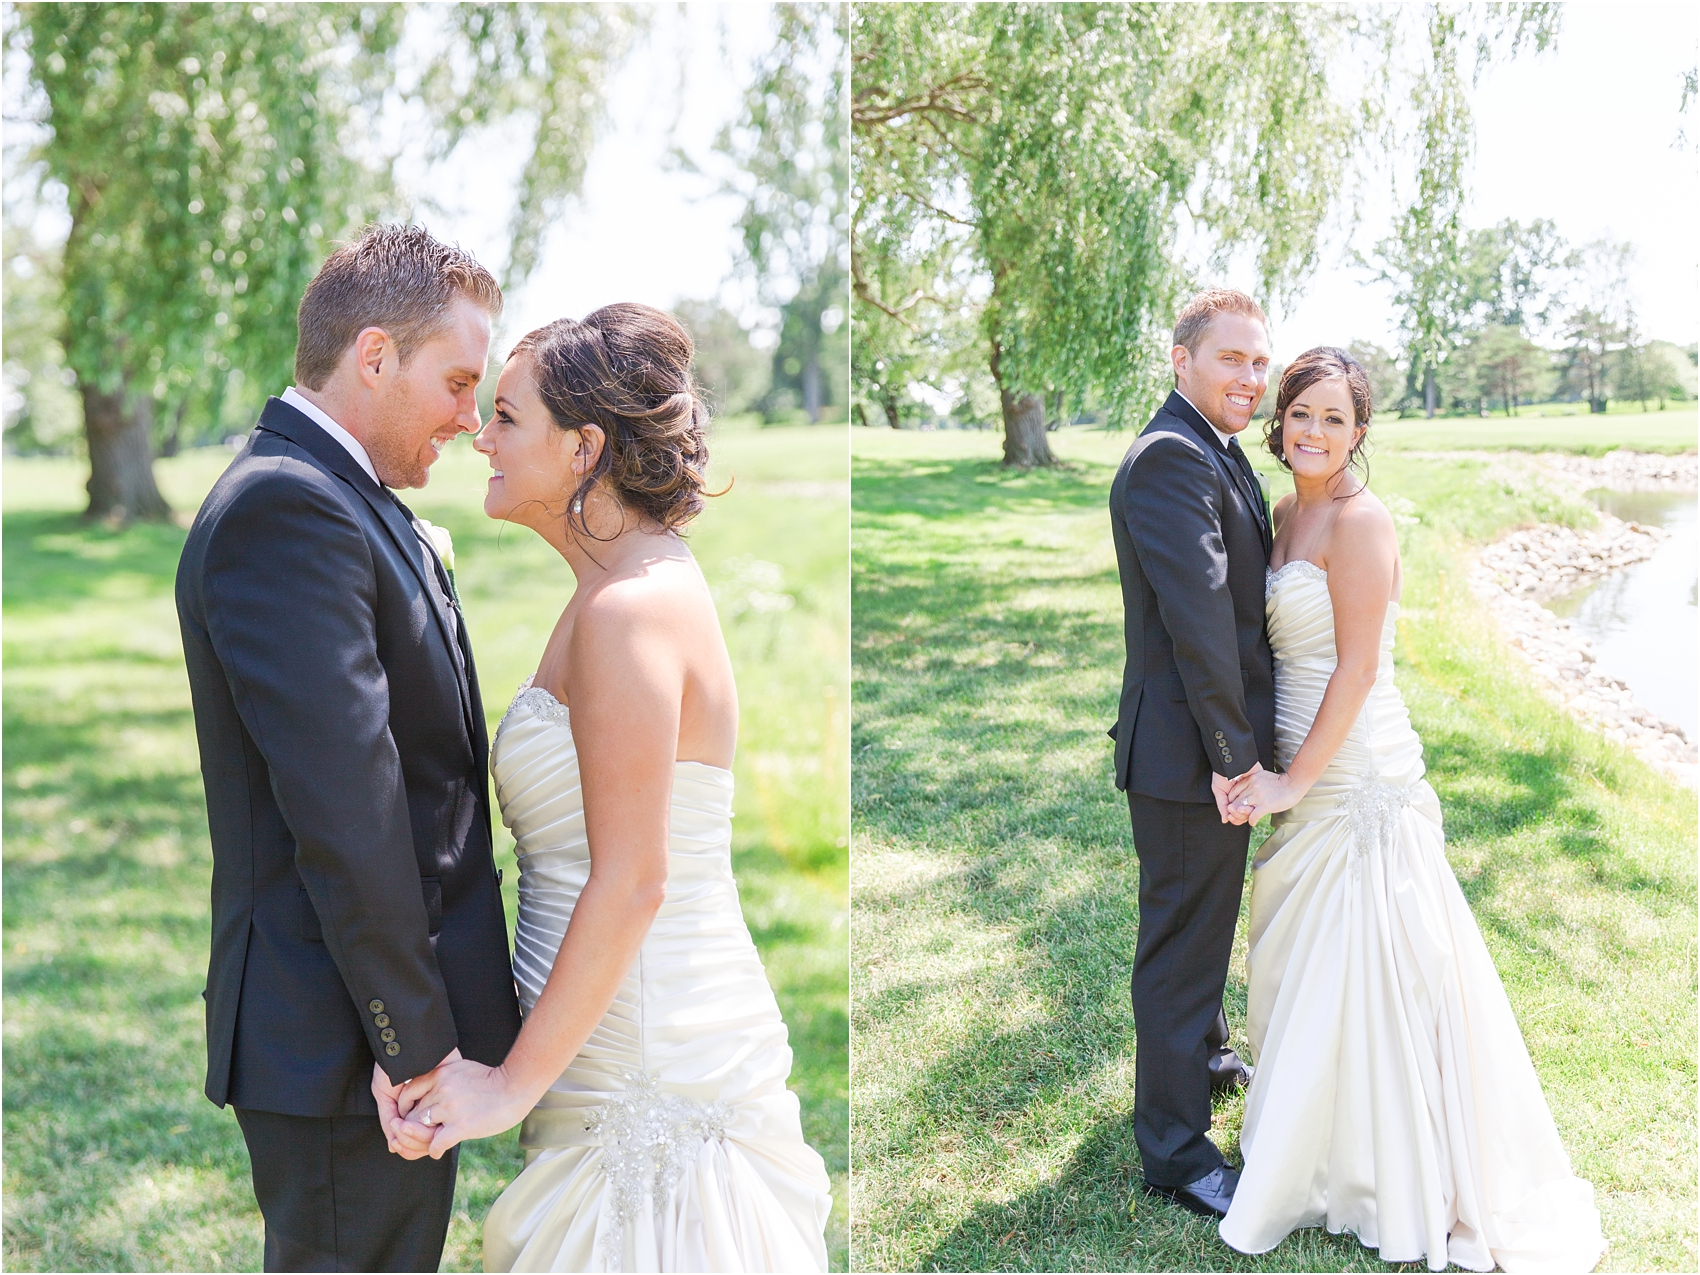 classic-wedding-photos-at-great-oaks-country-club-in-rochester-hills-mi-by-courtney-carolyn-photography_0037.jpg